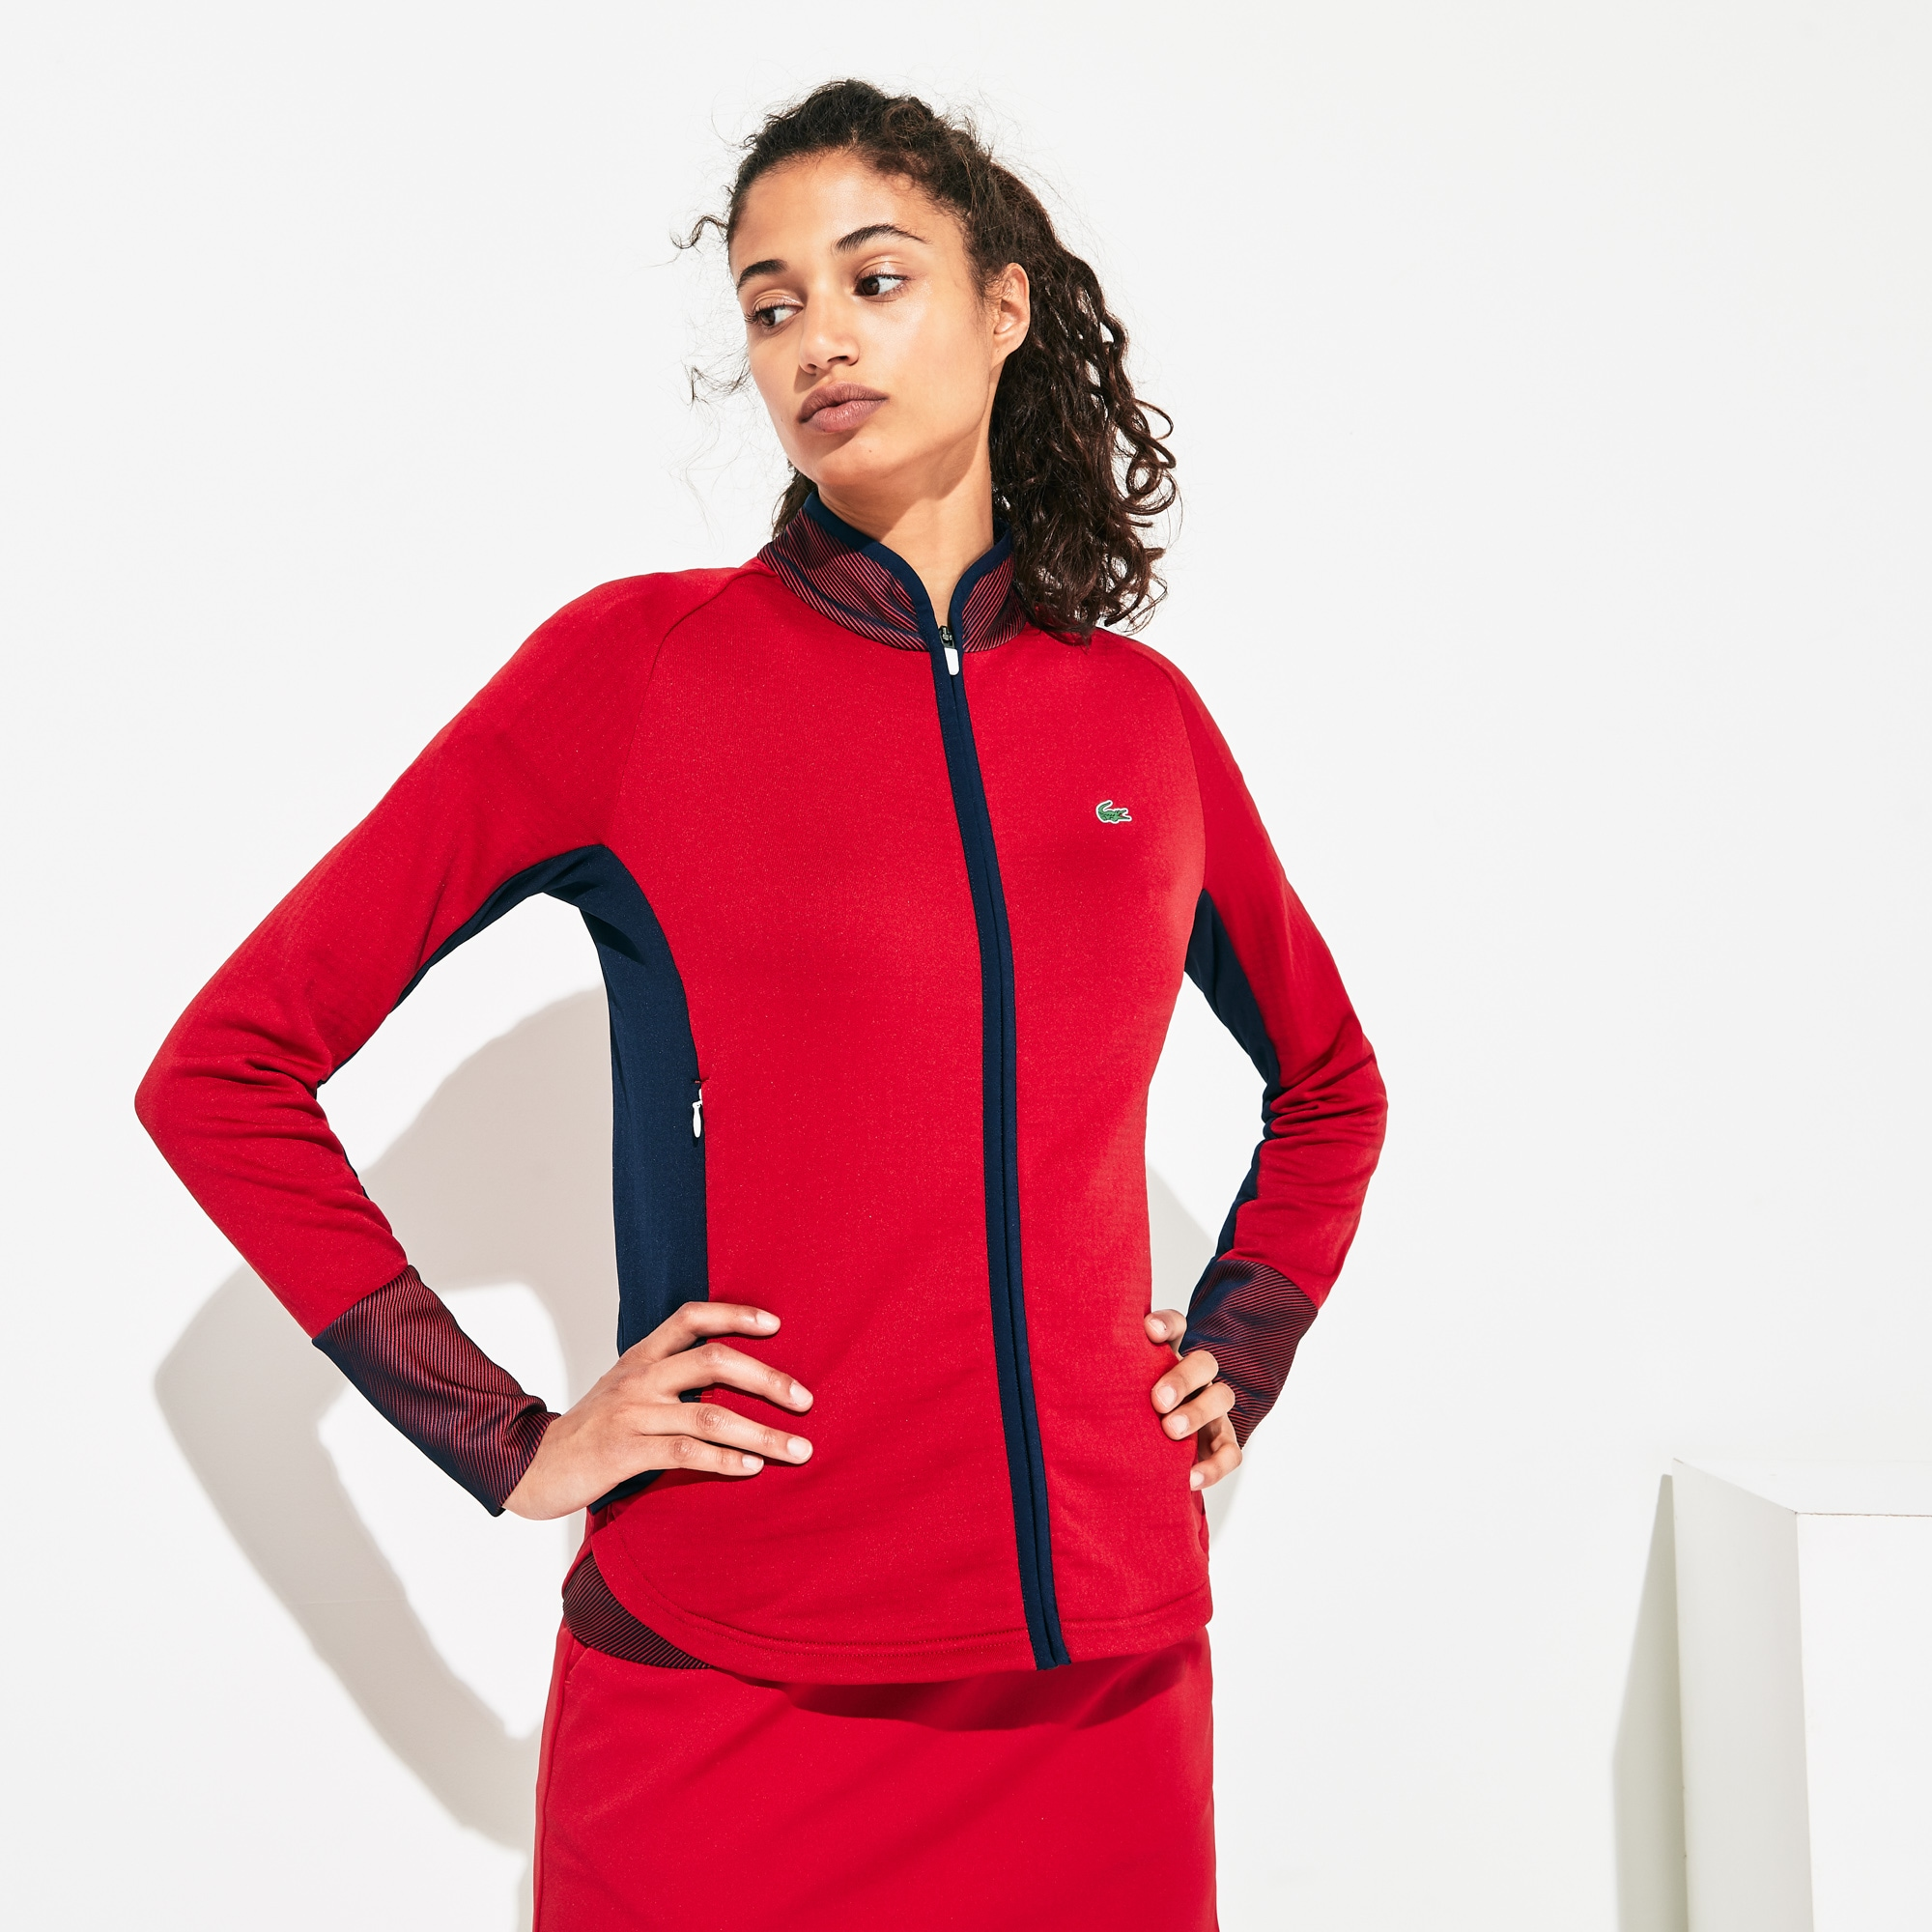 Women's Lacoste SPORT Breathable Stretch Bi-material Zip Golf Jacket